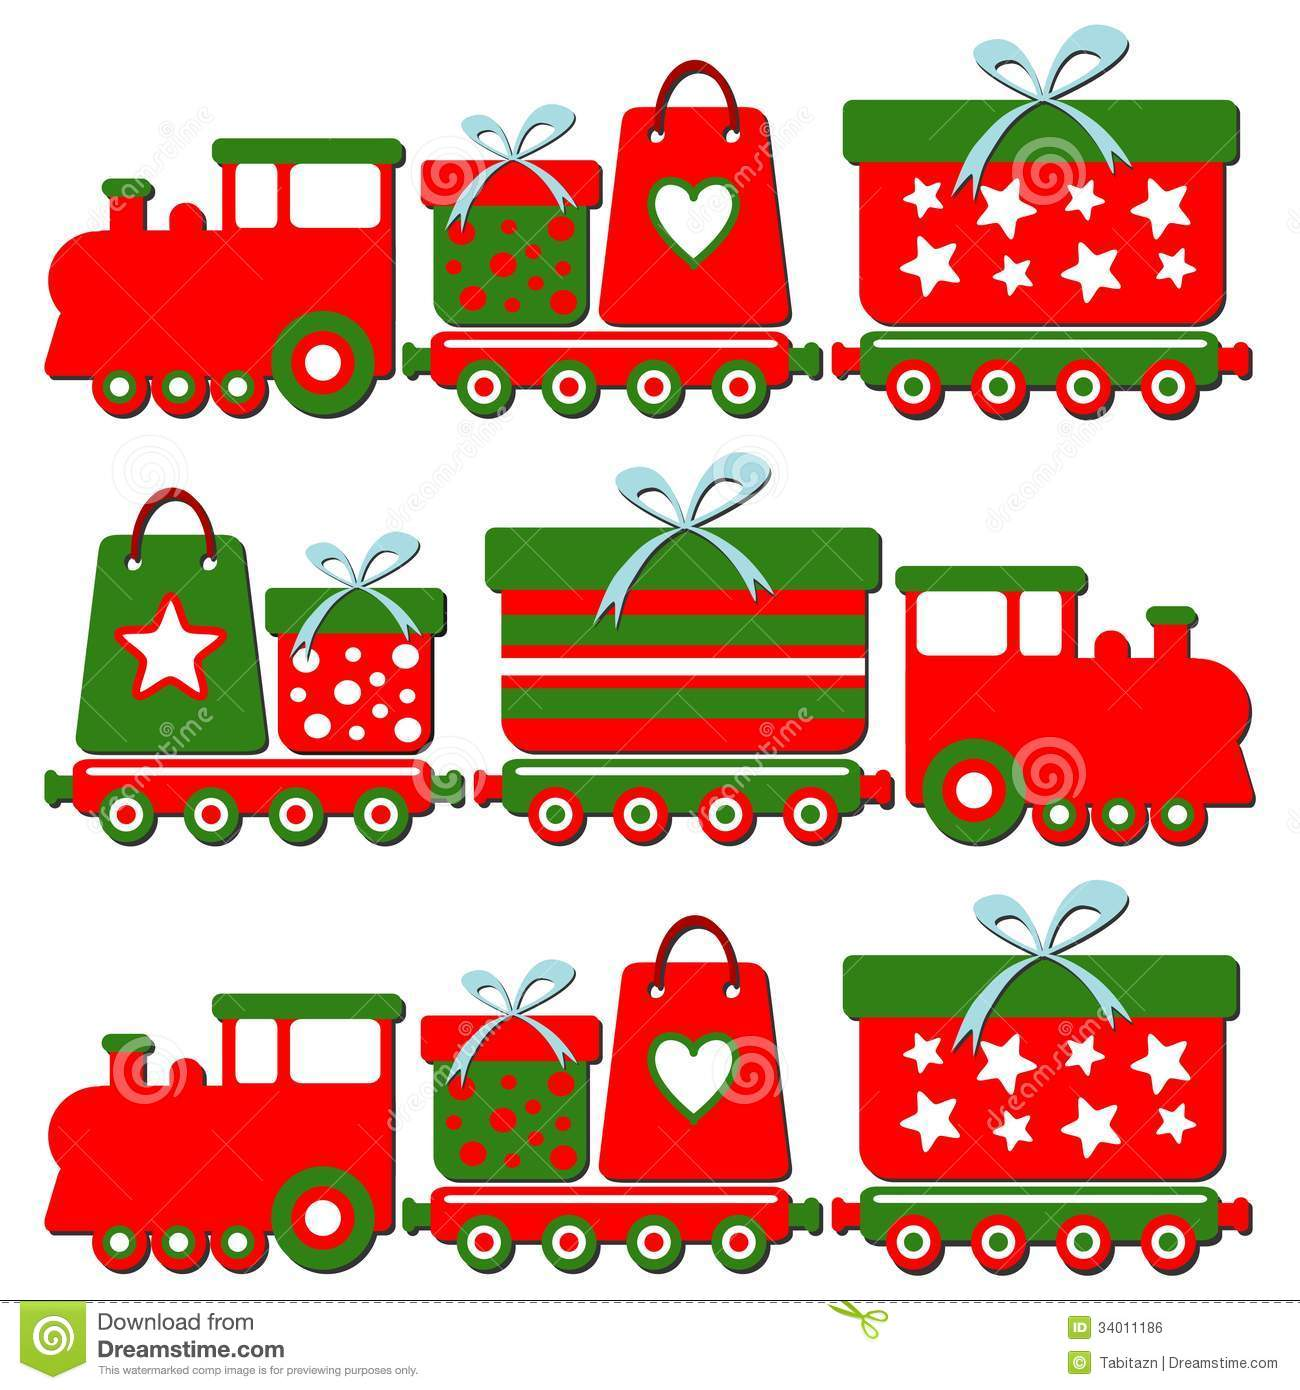 Cute christmas steam train with gift boxes illus stock